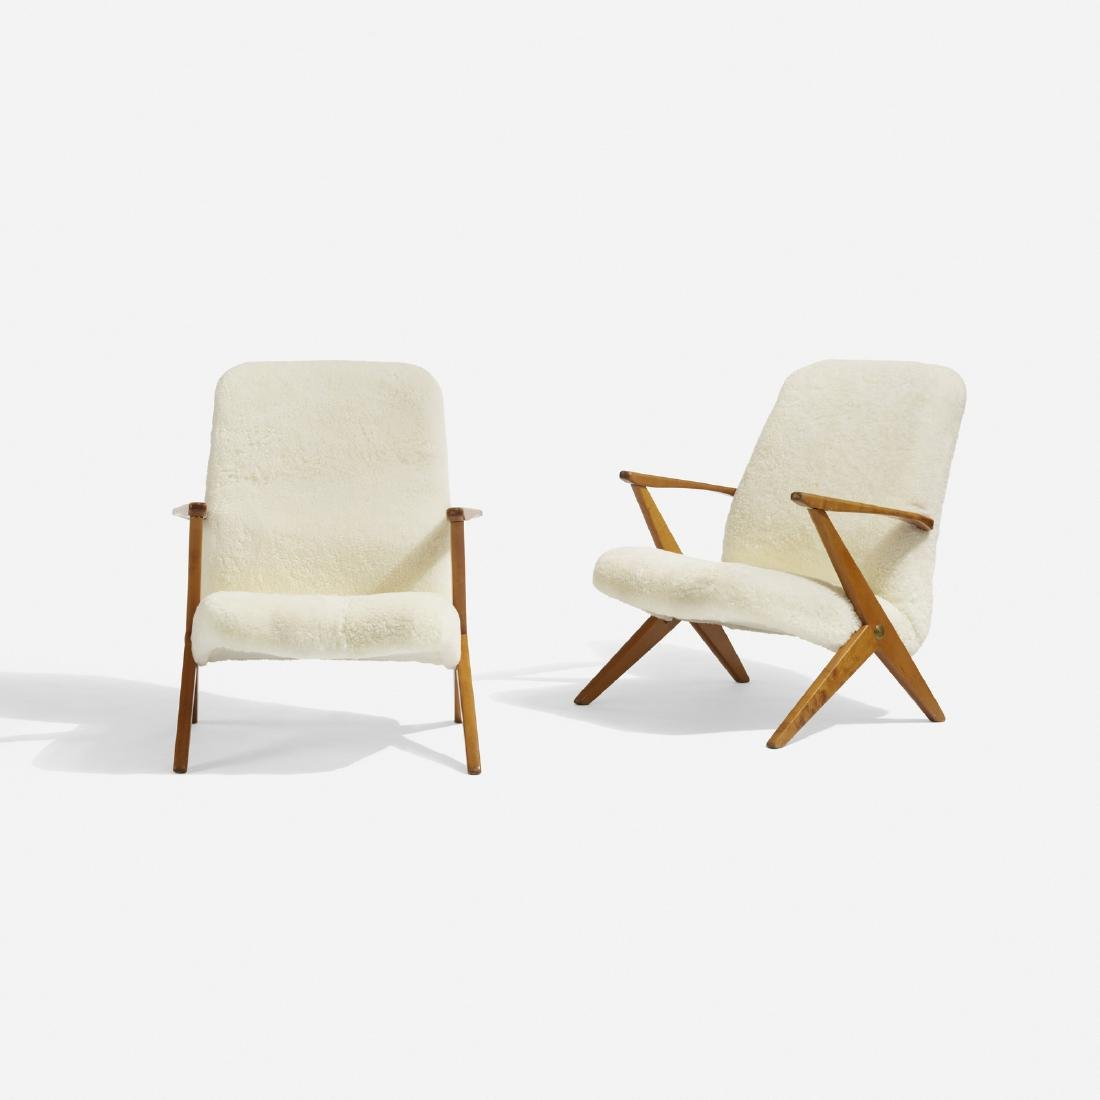 Bengt Ruda, lounge chairs, pair